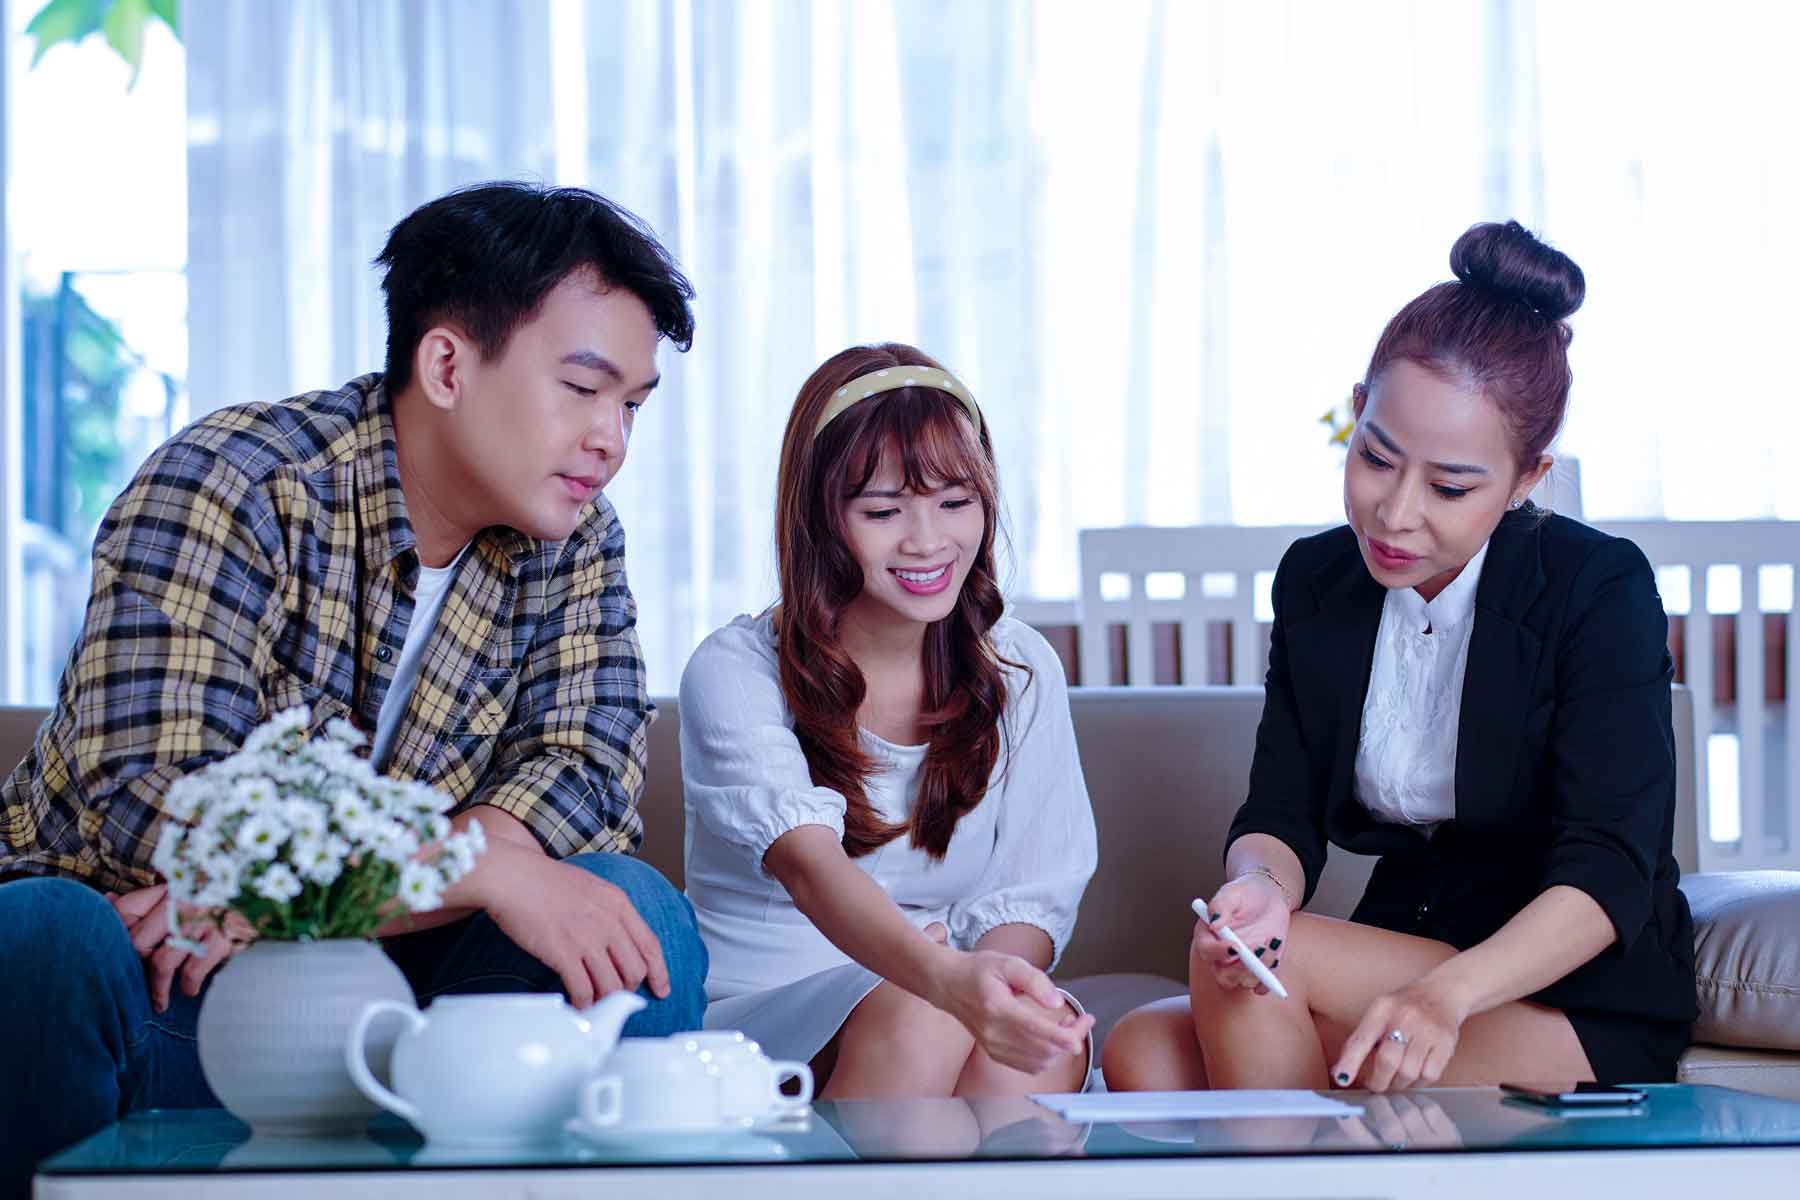 discussing-contract-details-RJ363HF-edited